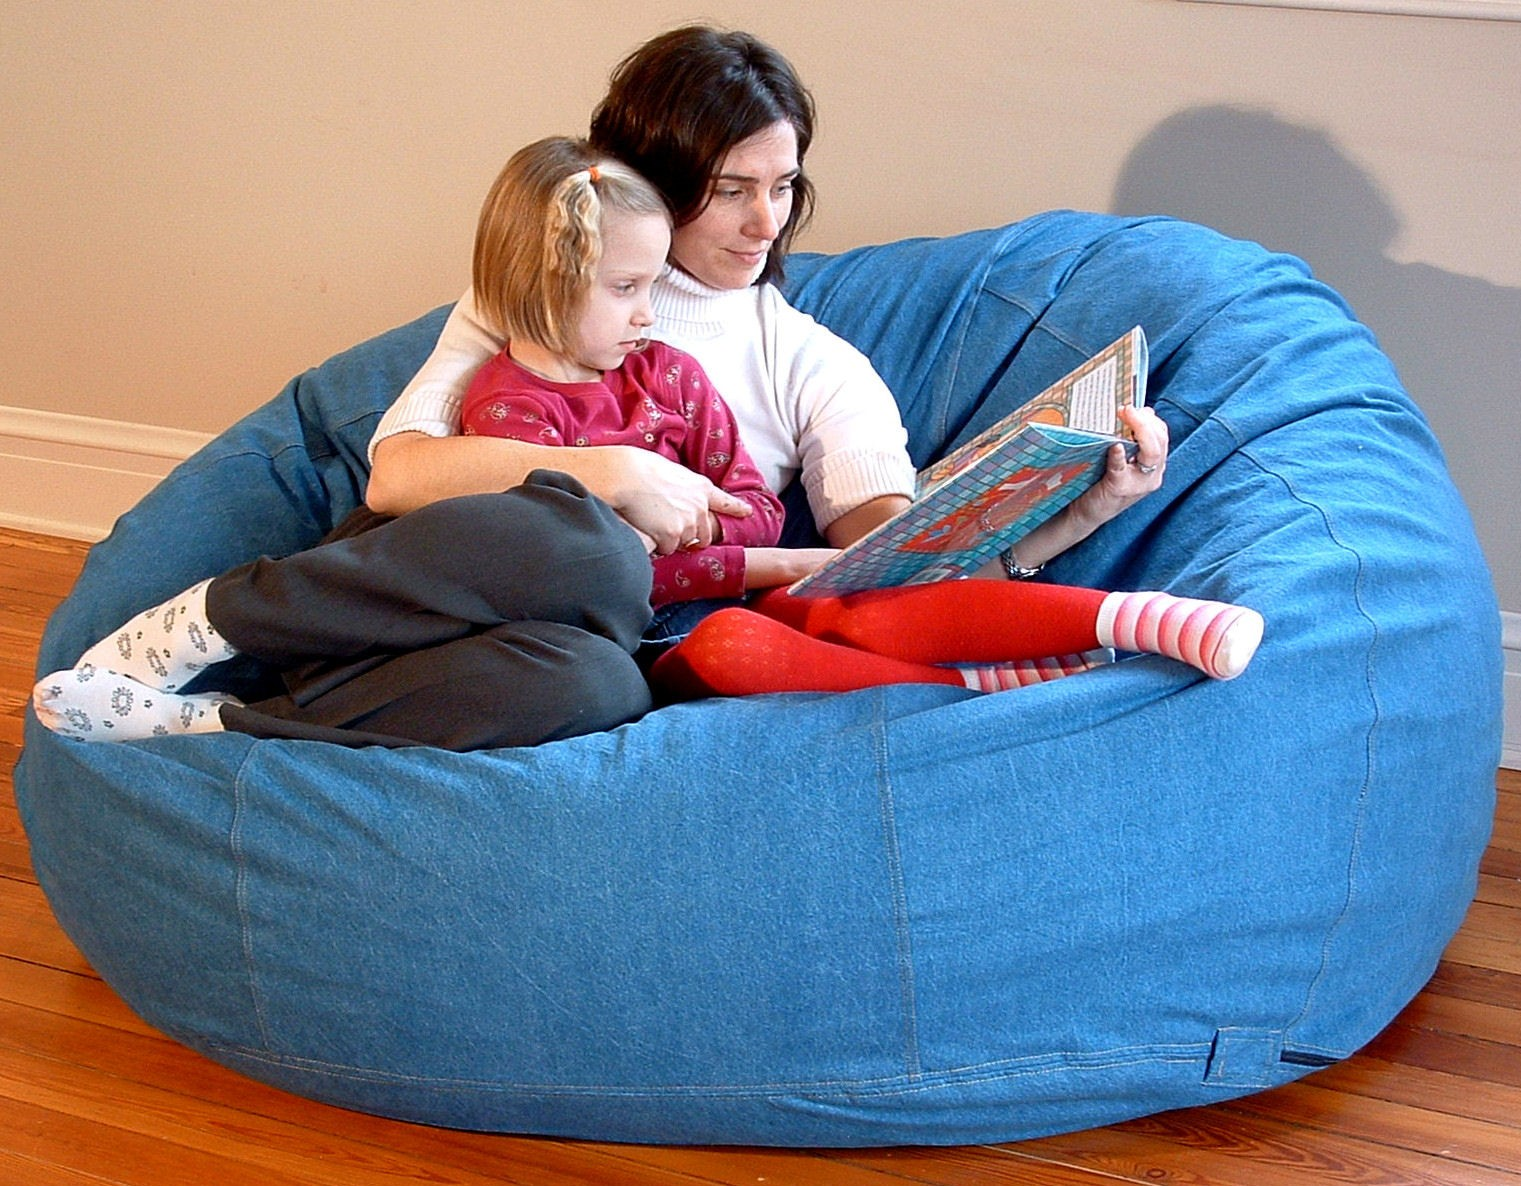 ... Anyone Can Rest Right On The Bean Bag Chairs With Their Kids